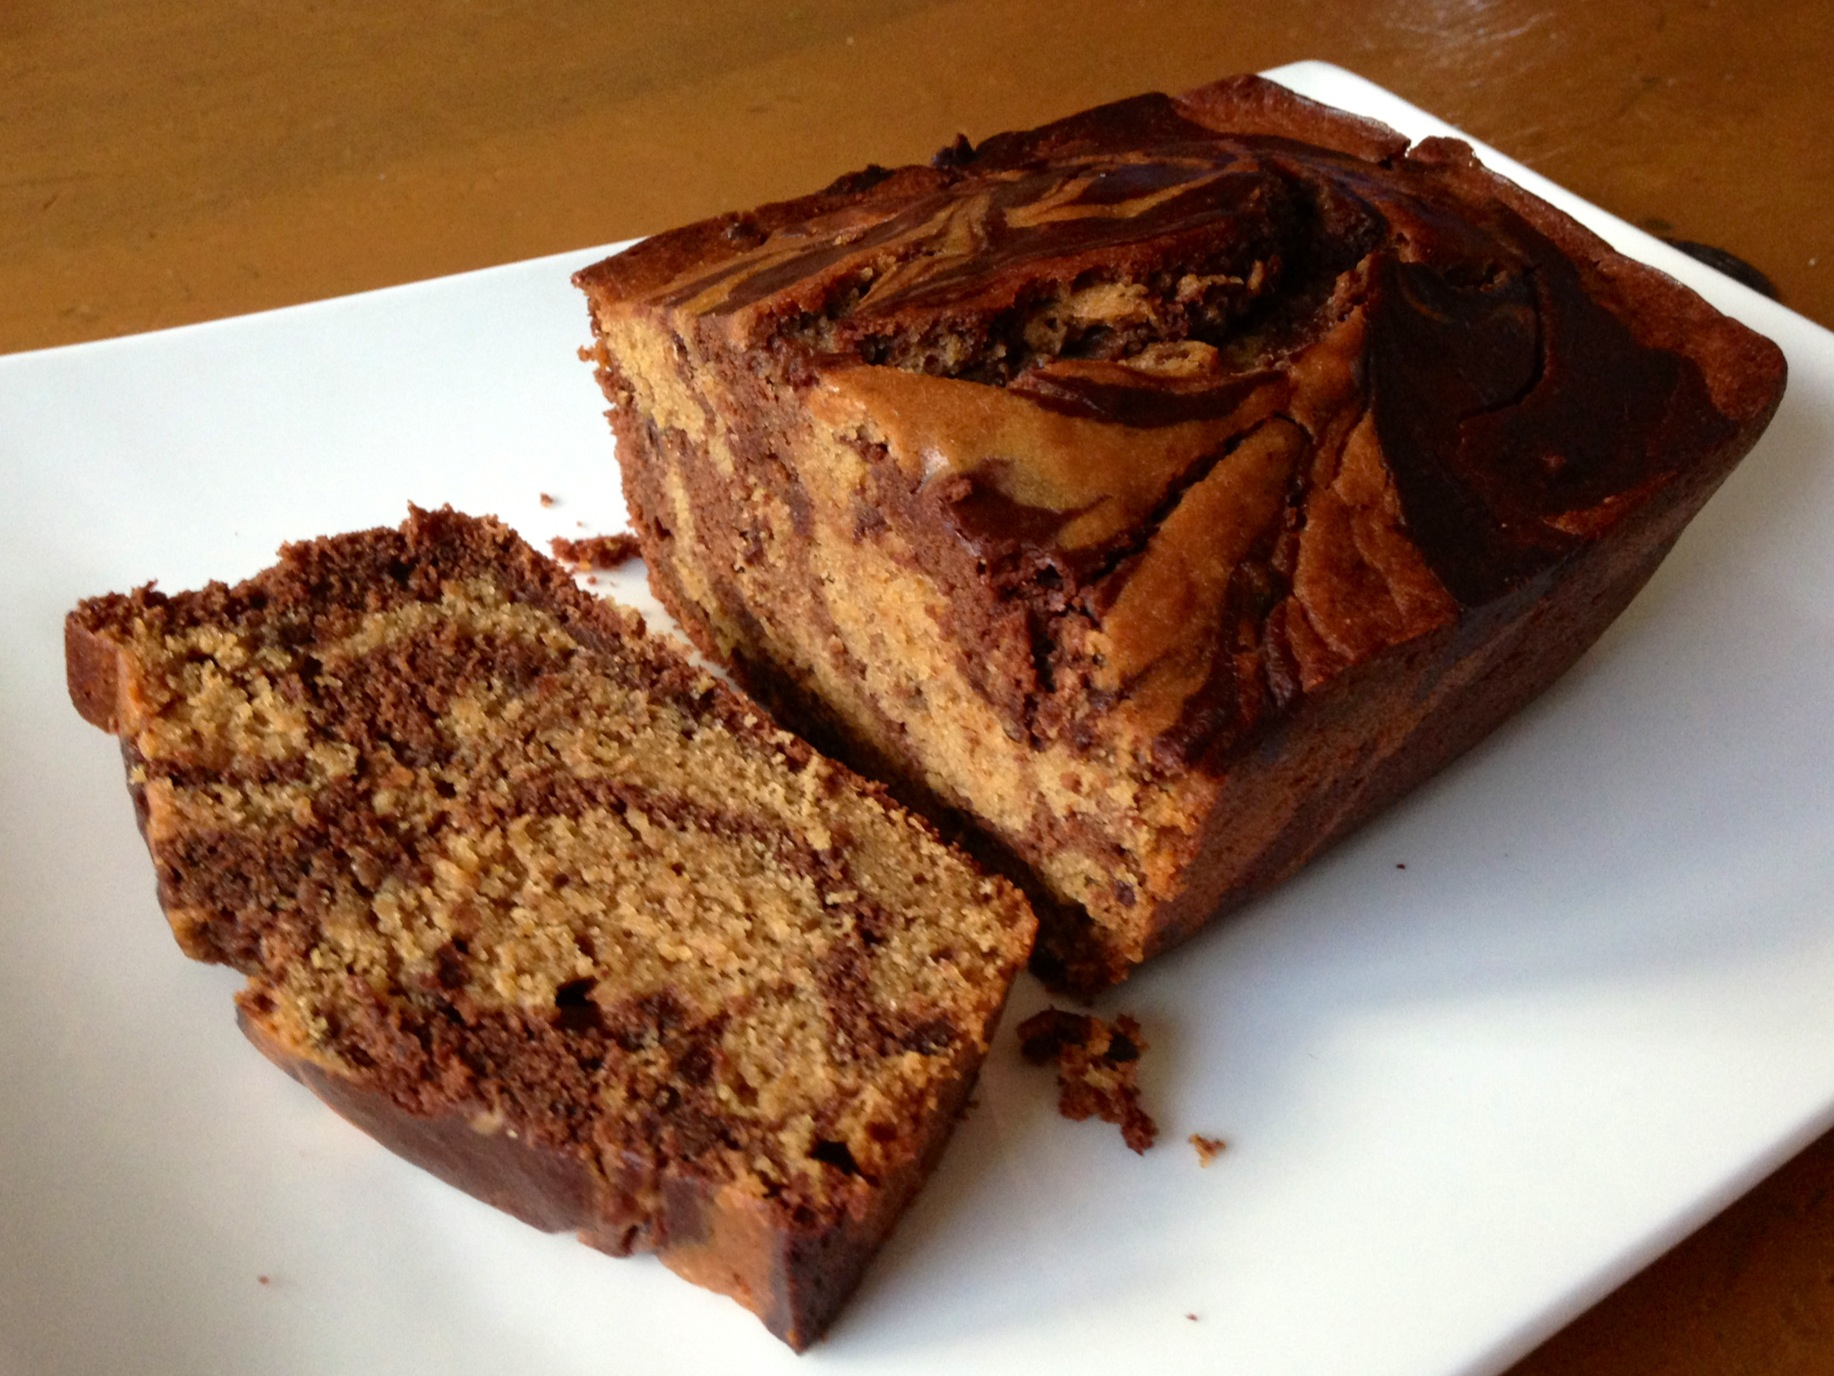 If you're a fan of Starbuck's marble loaf, you've got to try this vegan version that tastes exactly like the coffee house kind.